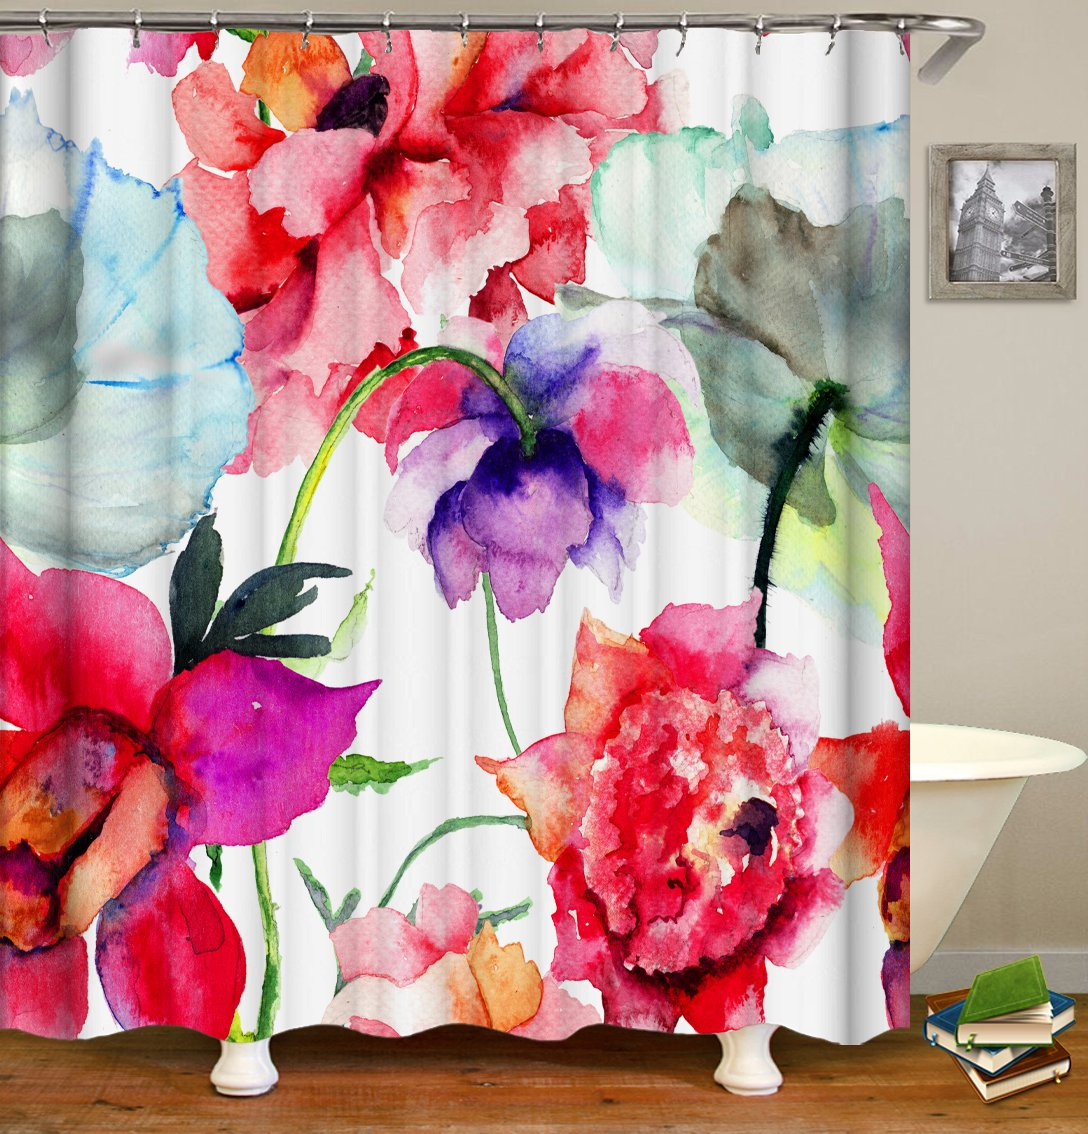 Livilan Aestheticism Shower Curtain Set, Abstract Watercolor Flowers Print, Thick Polyester Fabric, Mildew Mold Resistant Waterproof Machine Washable, 72 X 72 inch, Red